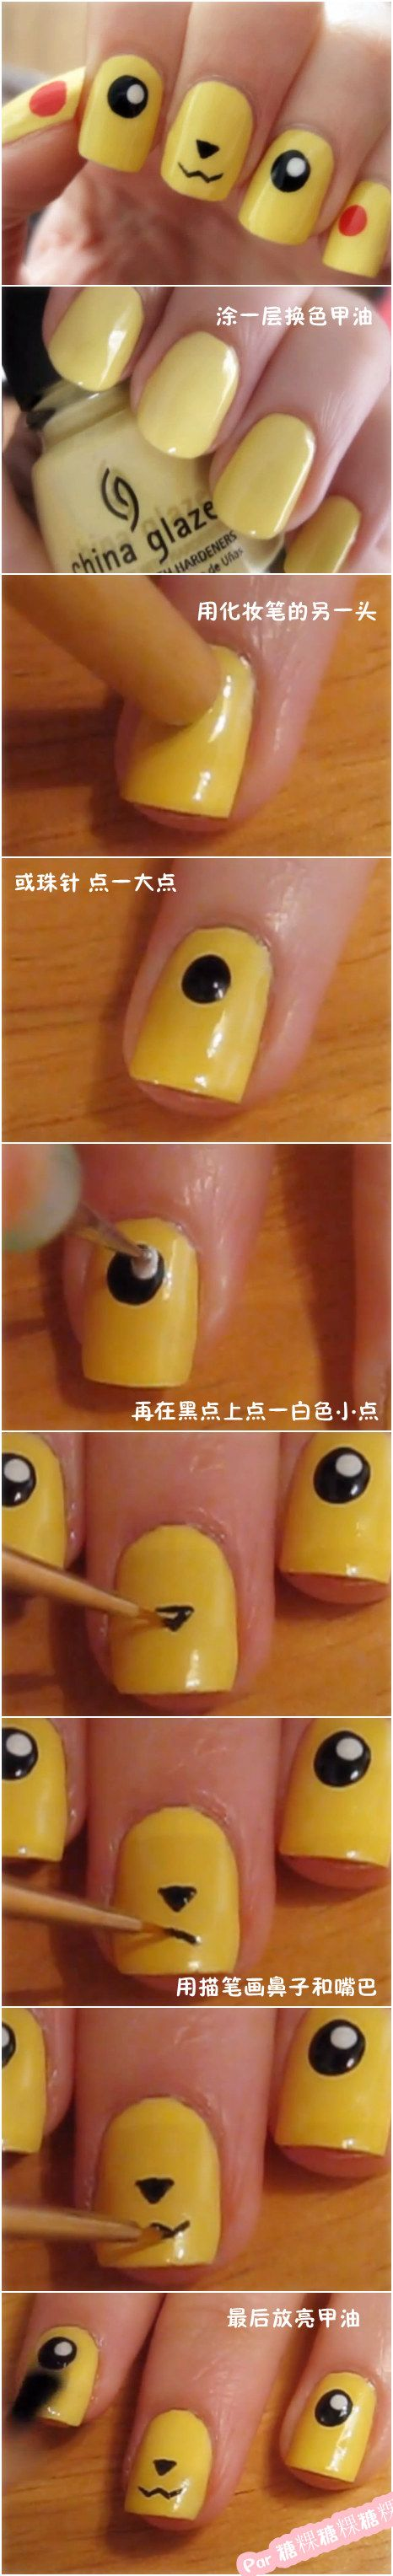 Did this the last week! Works really well if you can memorise pikachu's face like the ultafan I am